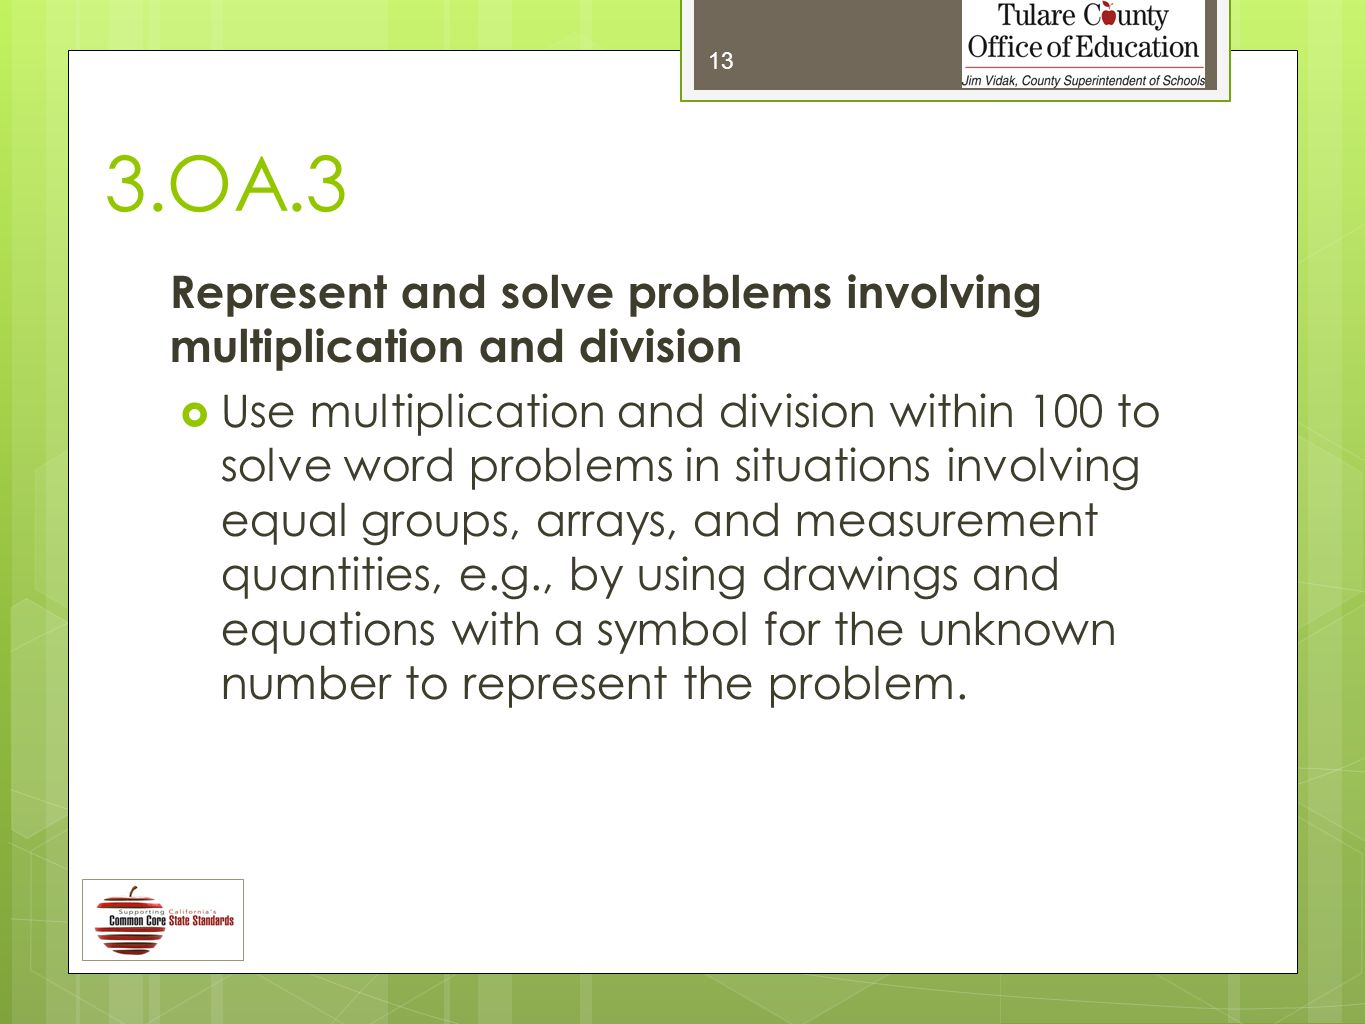 3.OA.3 Represent and solve problems involving multiplication and division  Use multiplication and division within 100 to solve word problems in situations involving equal groups, arrays, and measurement quantities, e.g., by using drawings and equations with a symbol for the unknown number to represent the problem.